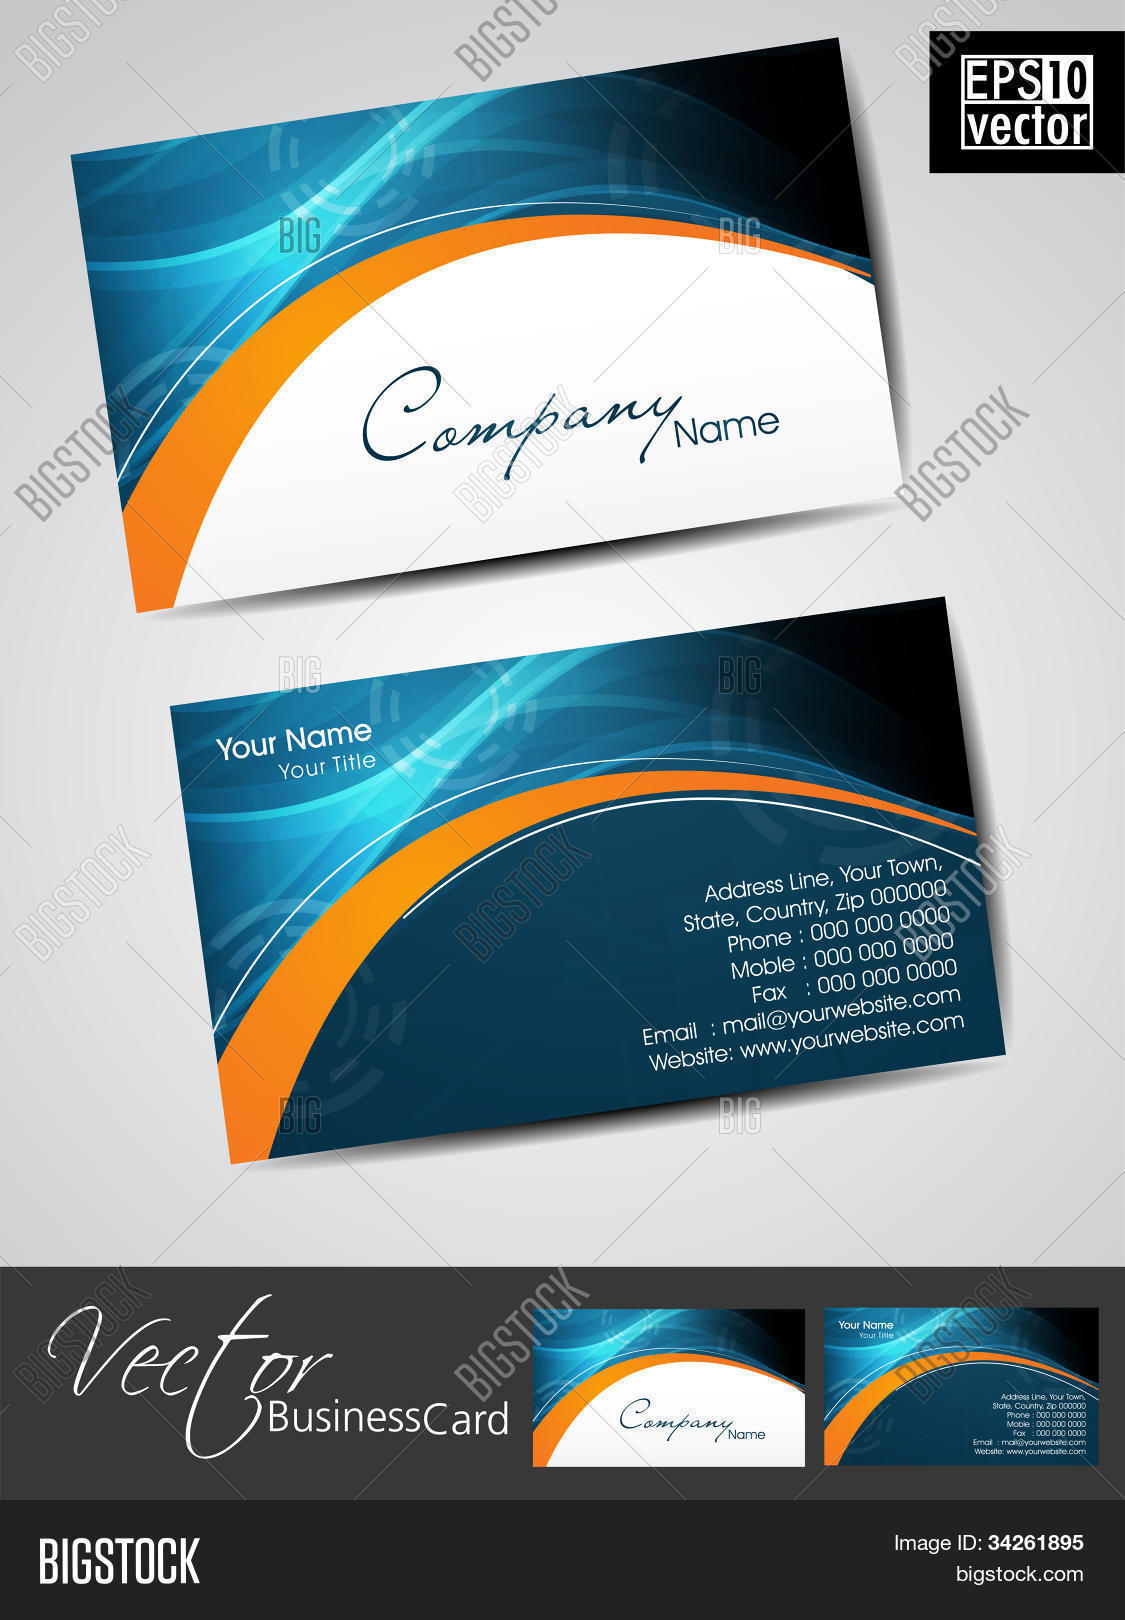 Professional business cards vector photo bigstock professional business cards template or visiting card set artistic wave effect blue and reheart Gallery